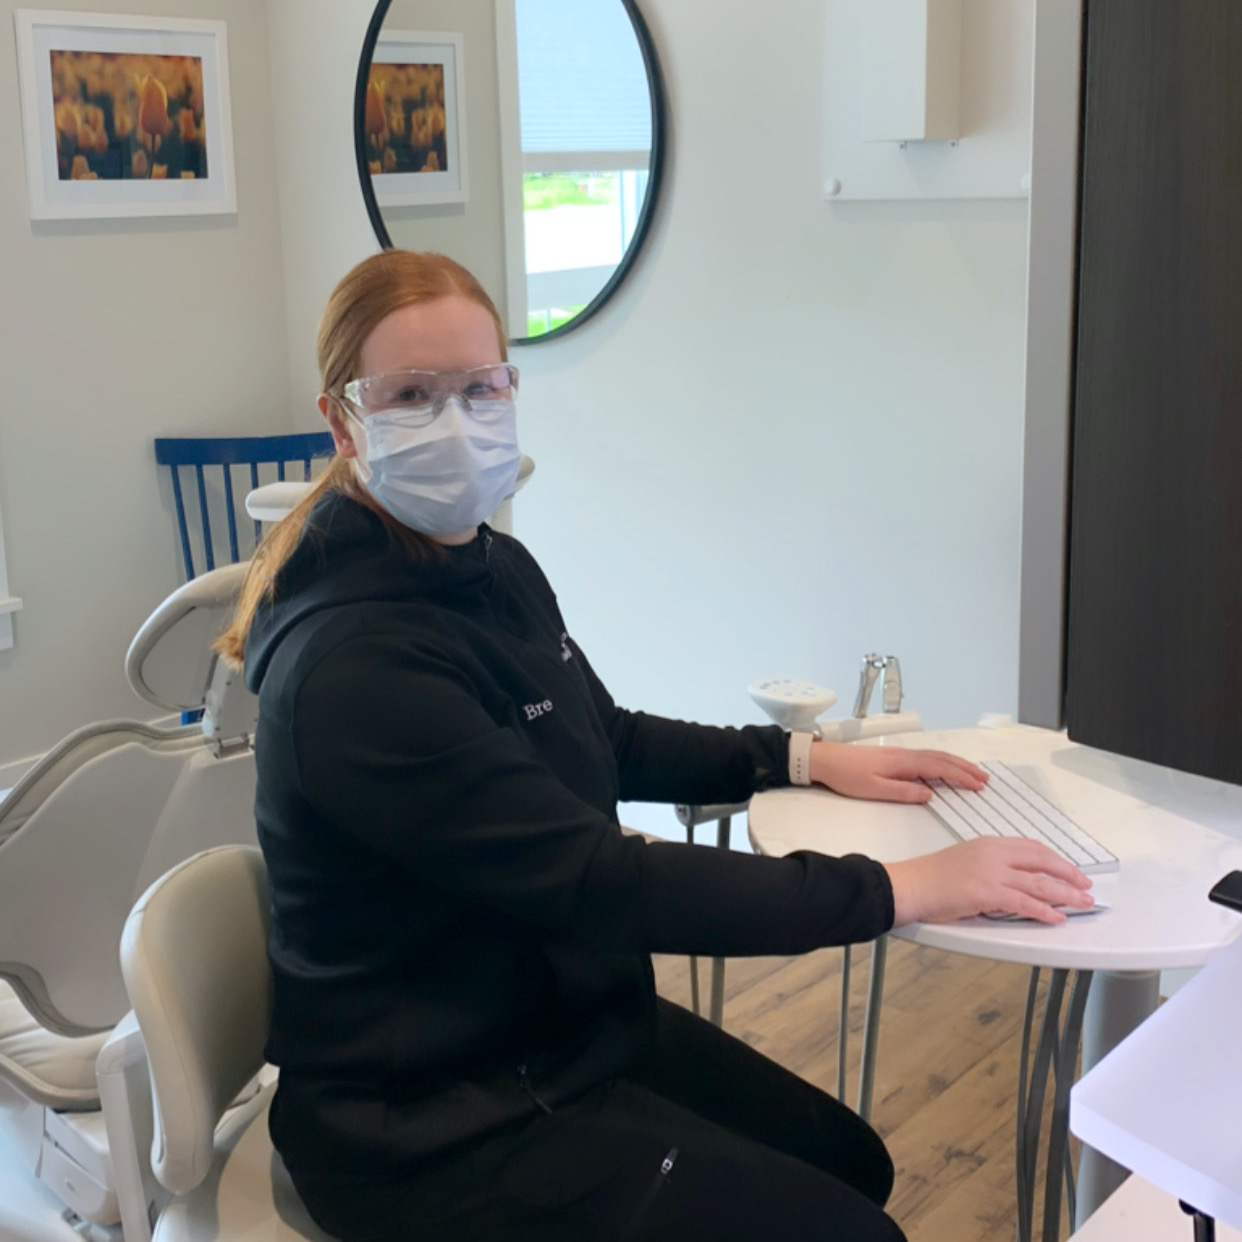 The Dentist Off Main - COVID Updates 5